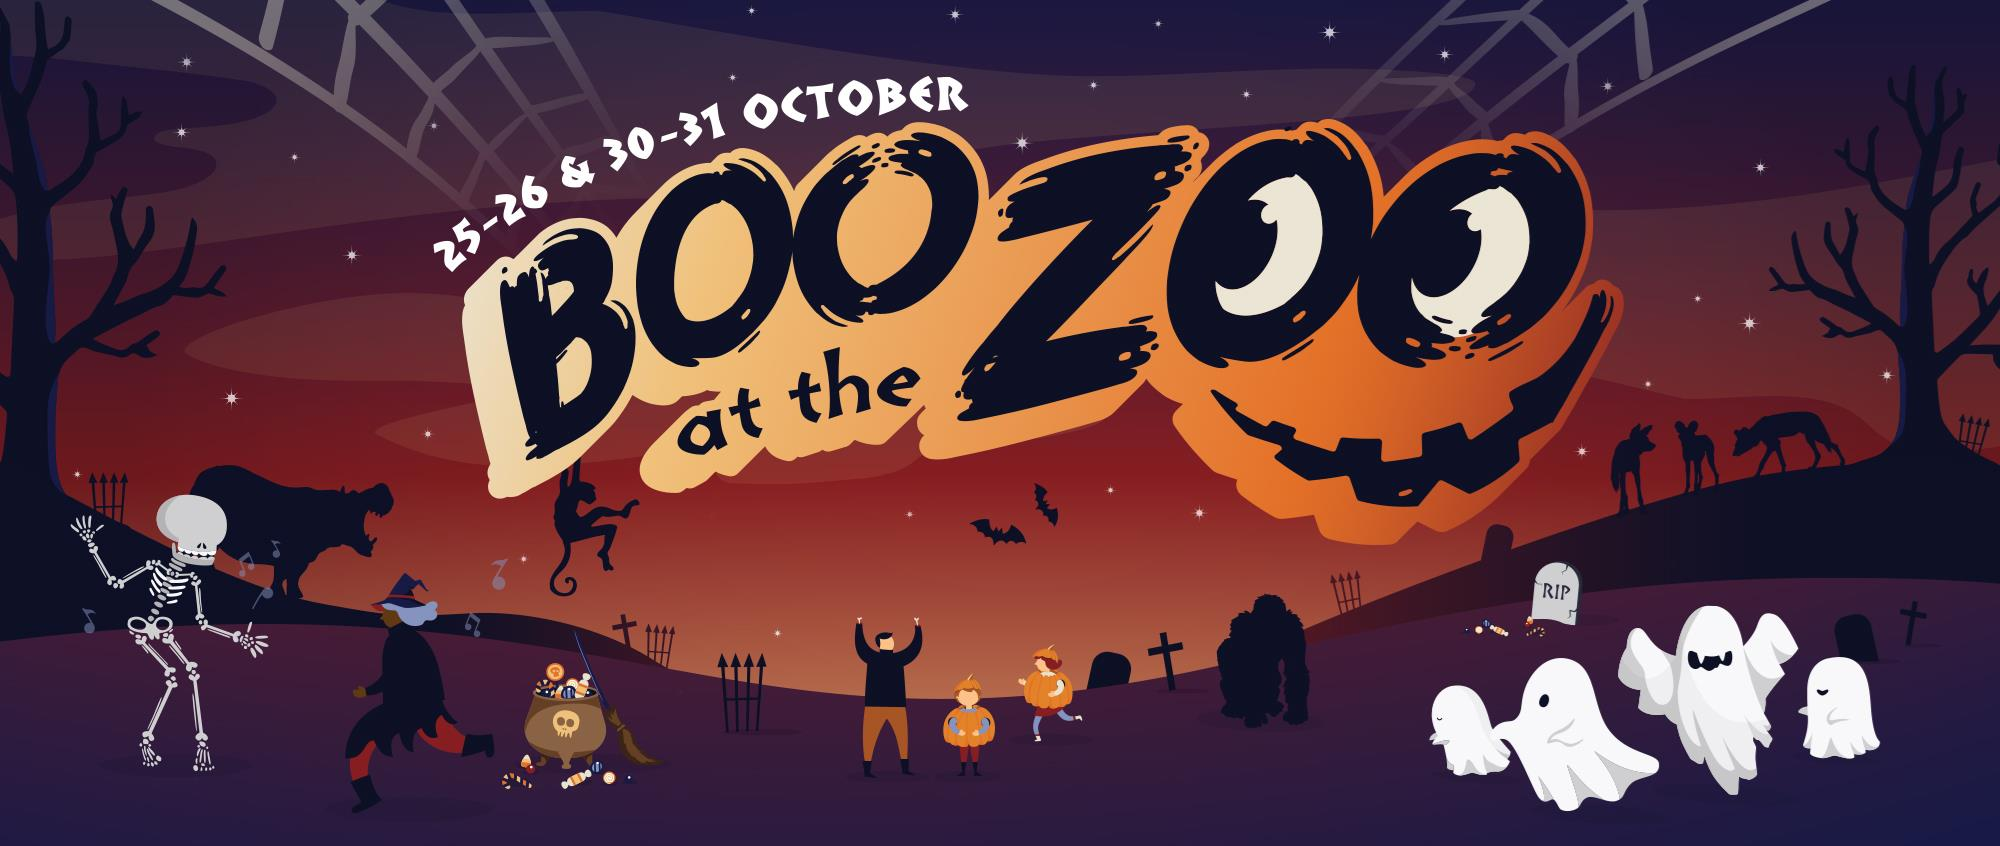 Boo at the Zoo banner. Image is cartoon and Halloween based with ghosts, grave stones, spider webs and people dressed in costumes. Sunset orange colours and African animals are silhouetted on the horizon.